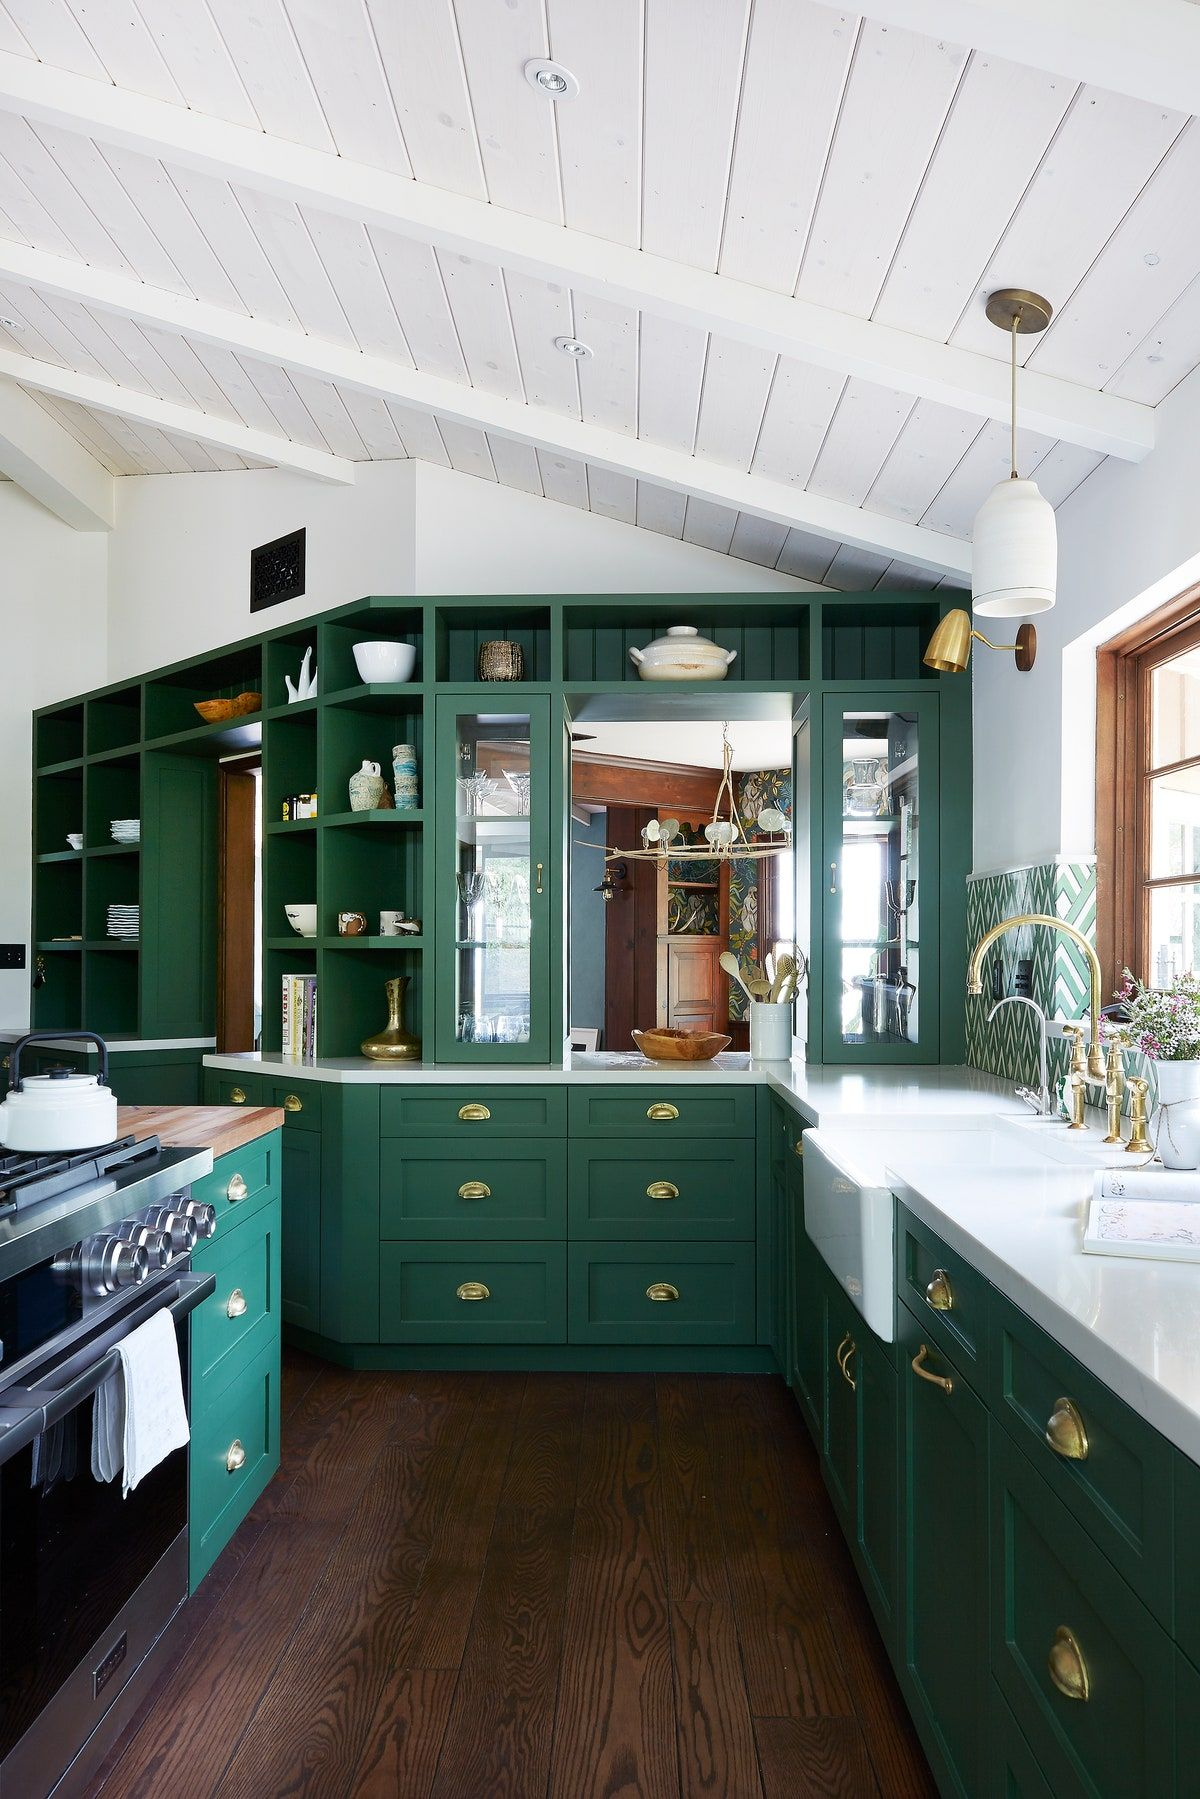 Green Kitchens Are Having A Moment In 2020 Kitchen Color Trends Green Kitchen Dark Green Kitchen